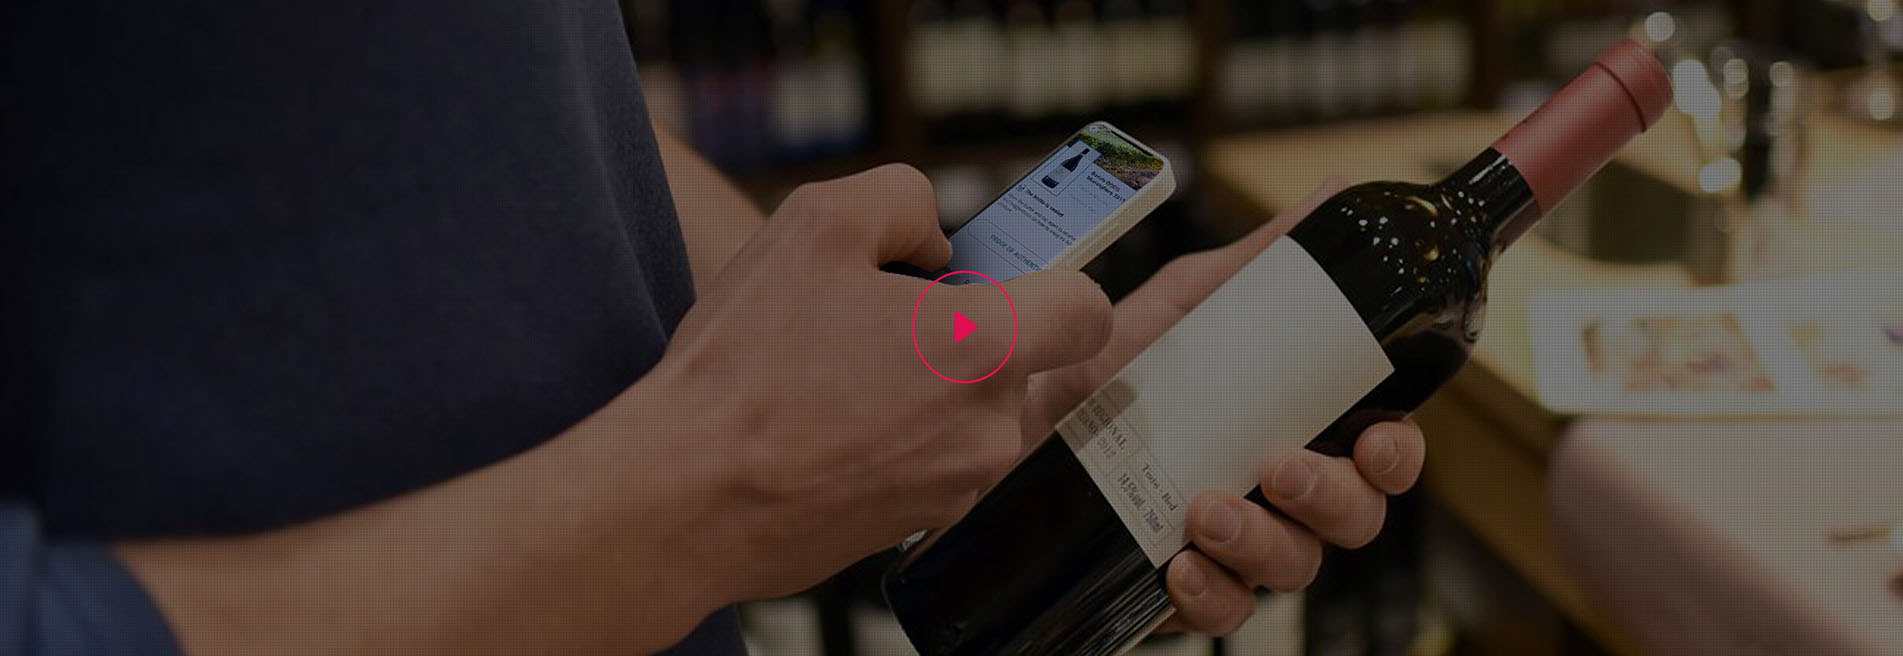 scanning of alcohol product and verification of authenticity